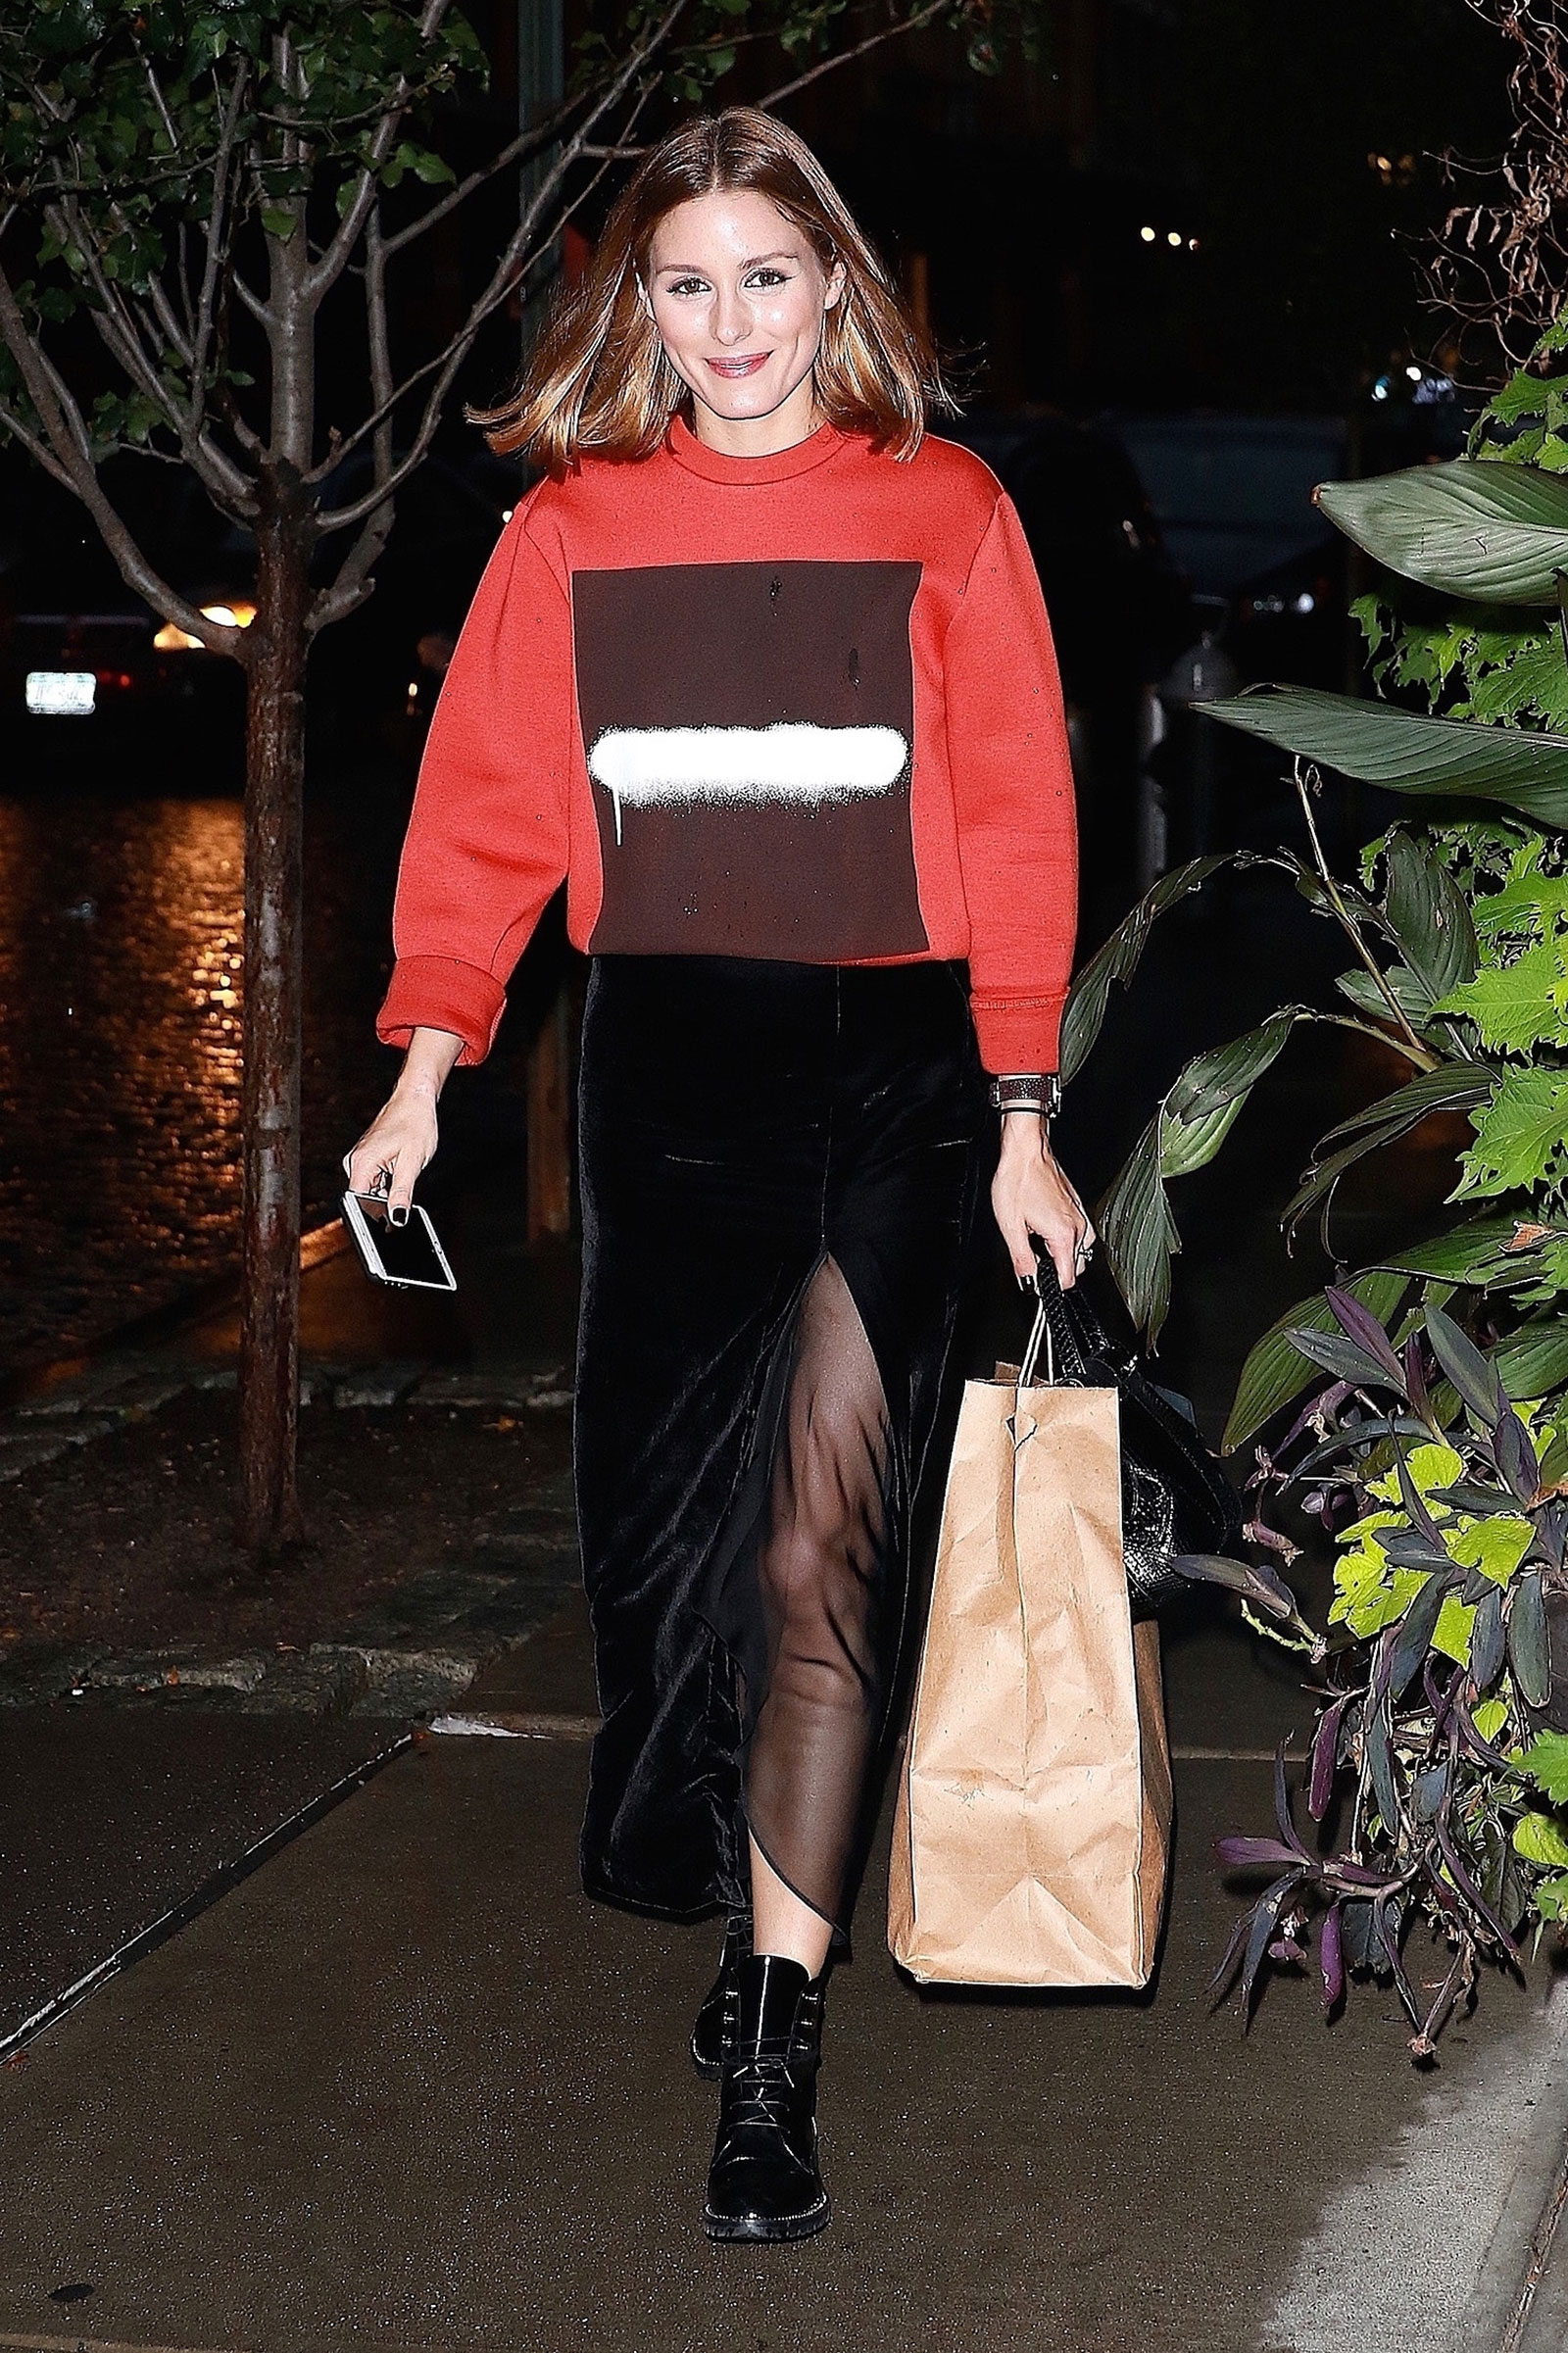 For an unconventional holiday party look, try a velvet midi skirt, chunky red sweater and combat boots like Olivia Palermo.